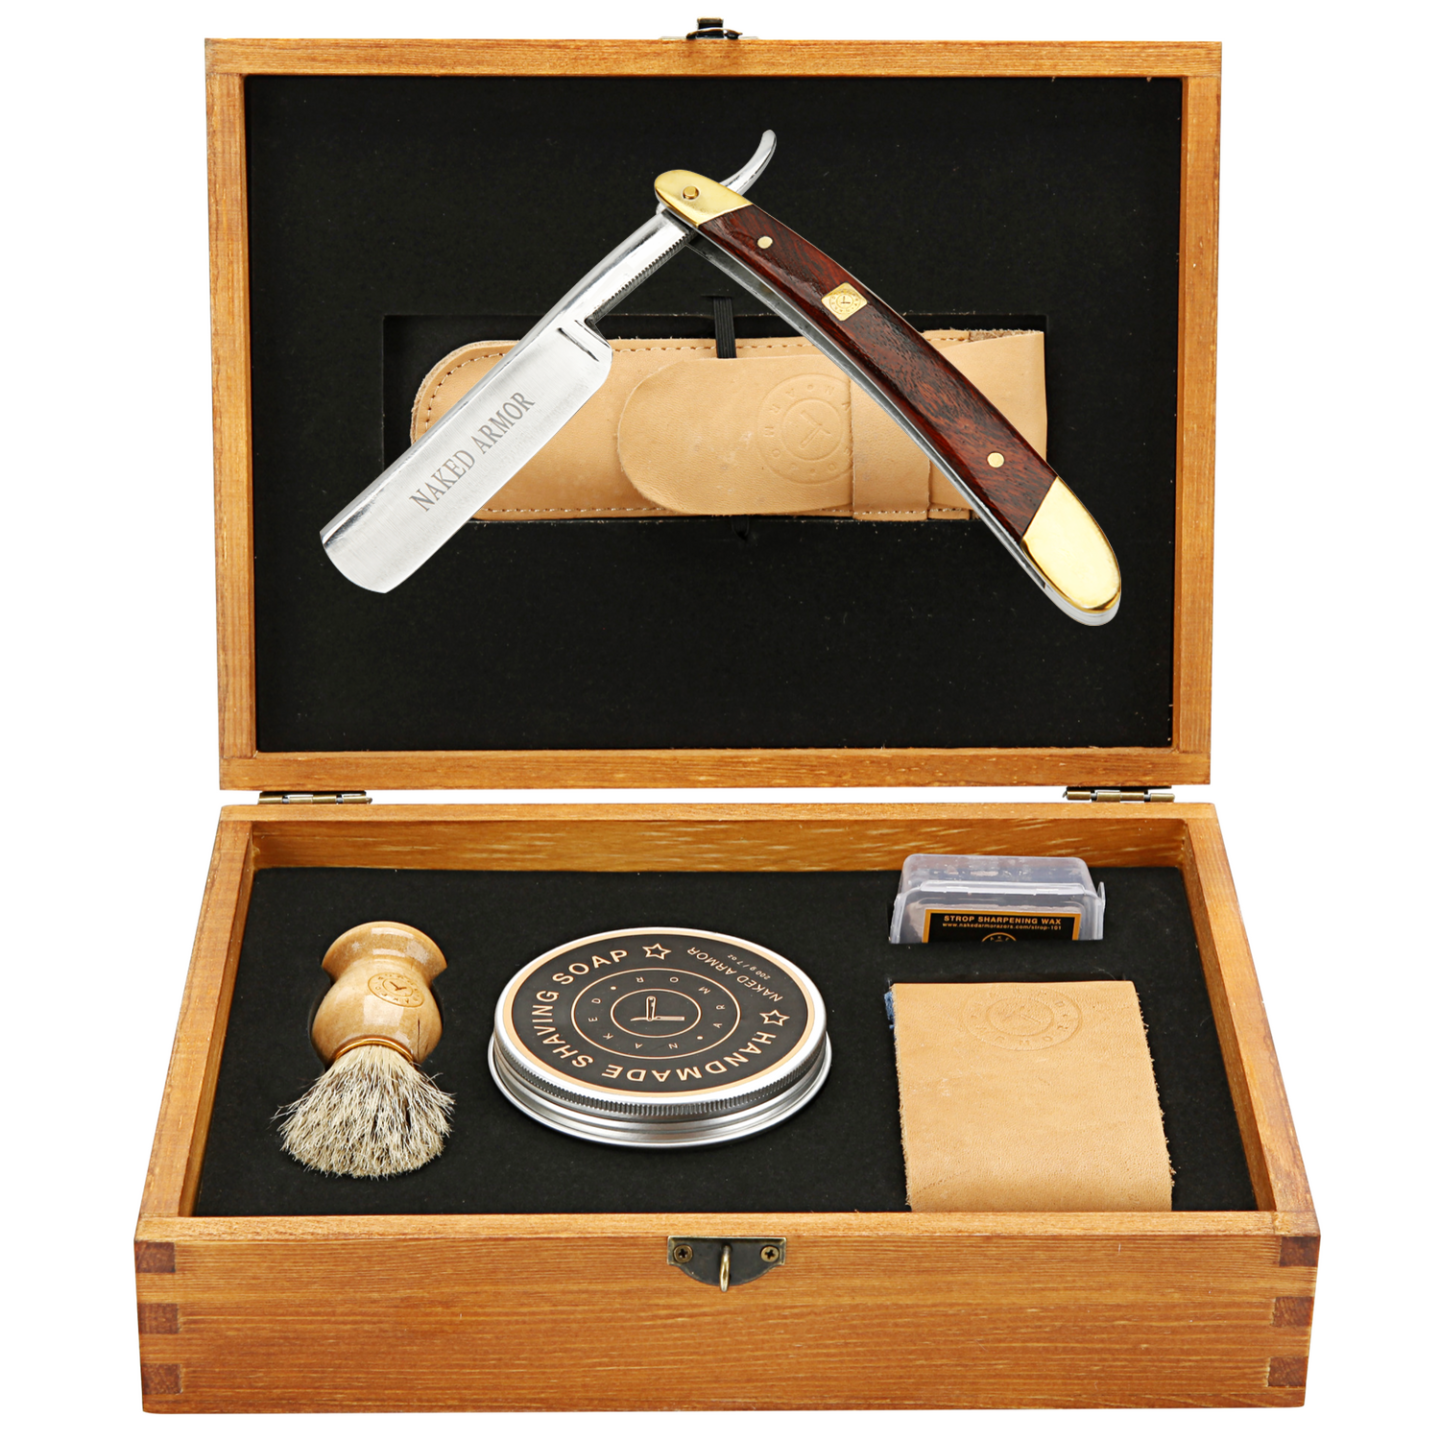 Gifts for guys with expensive taste: Old school shaving kit